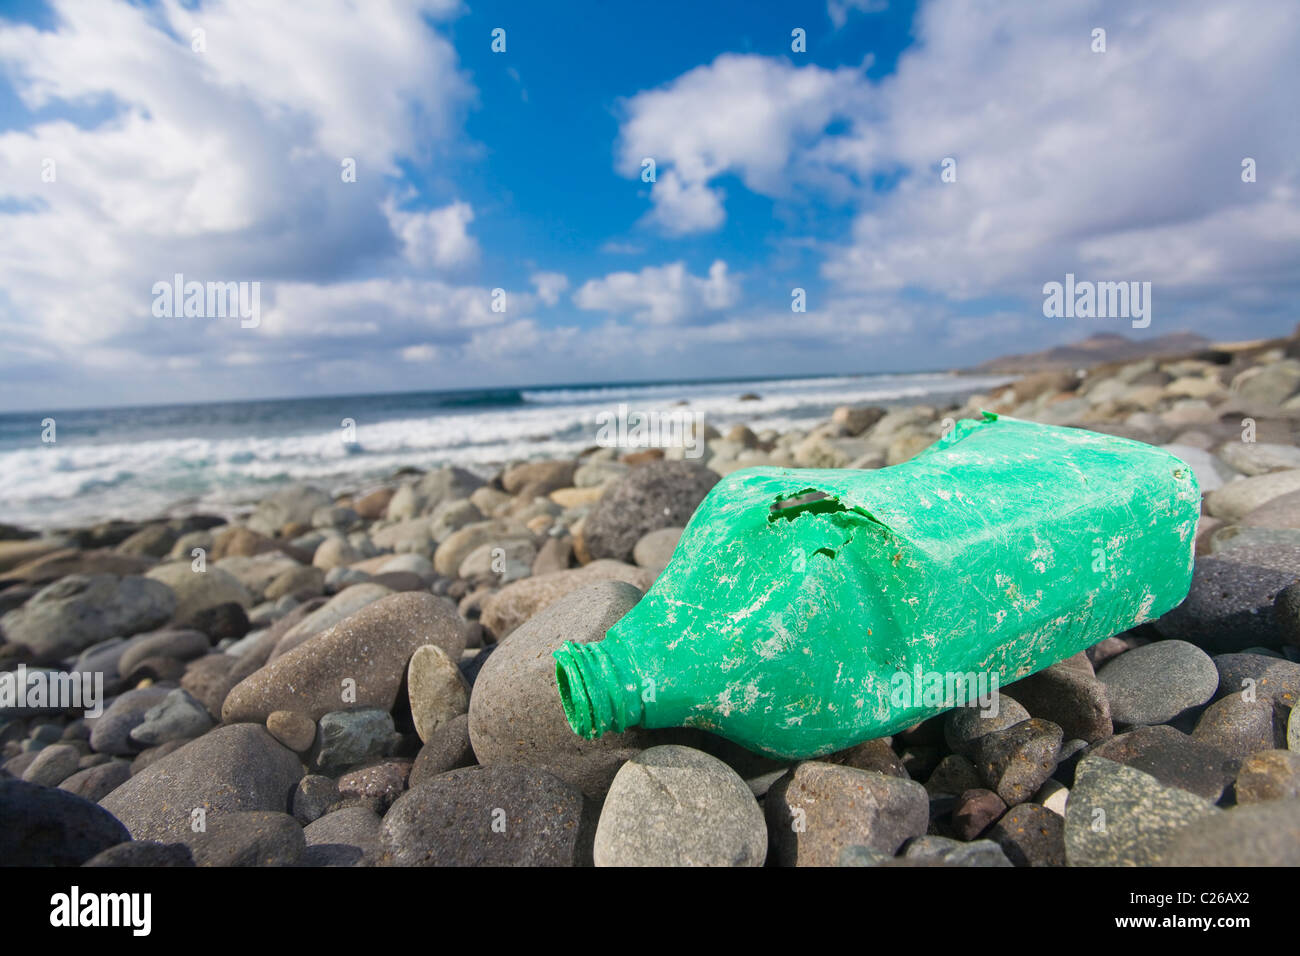 An old oil bottle lying on a rocky shore. Nice shot for biodegradable or environment concepts. - Stock Image